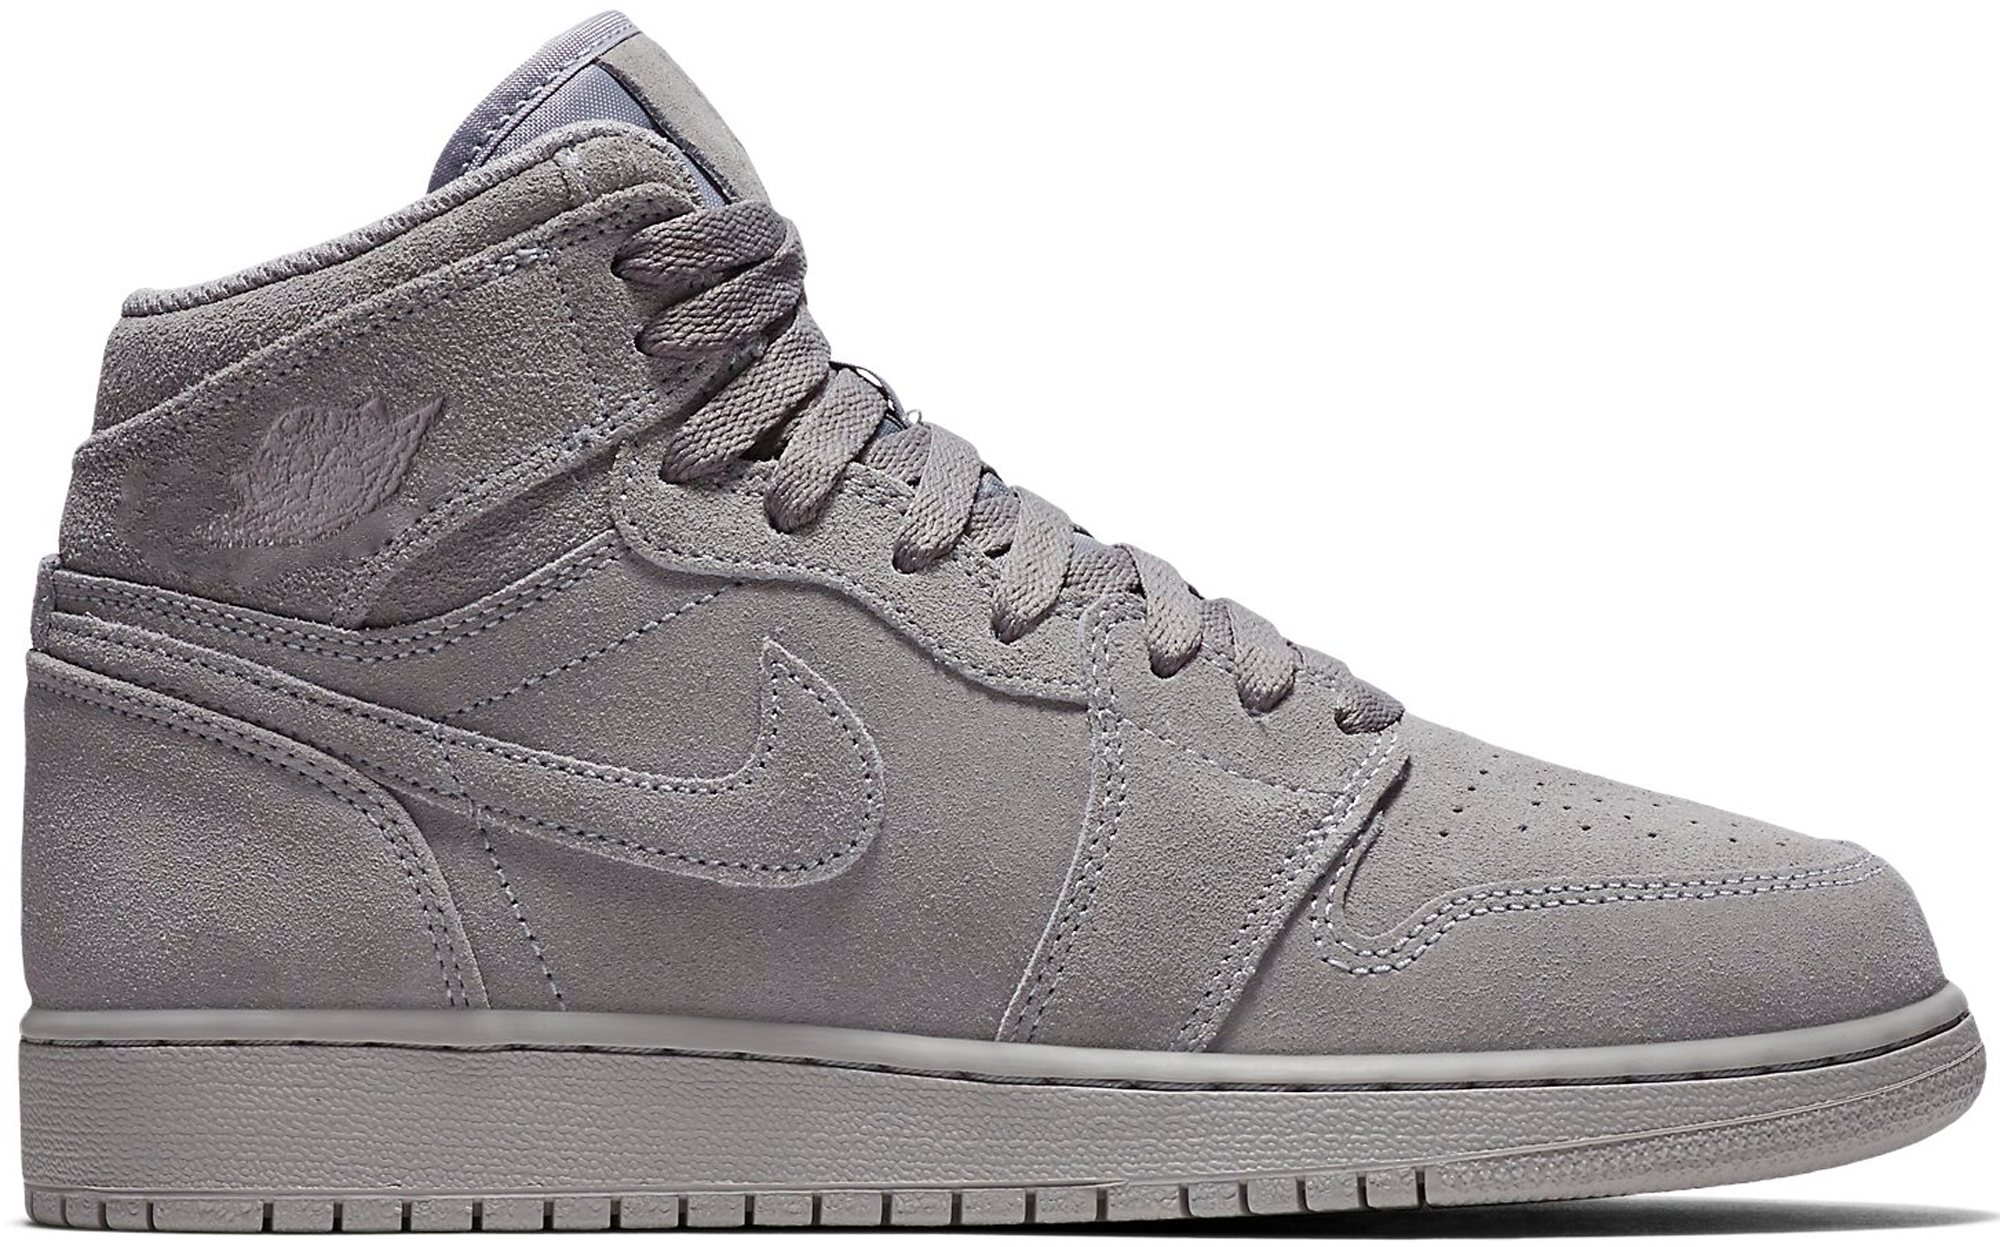 Jordan 1 Retro High Grey Suede (GS